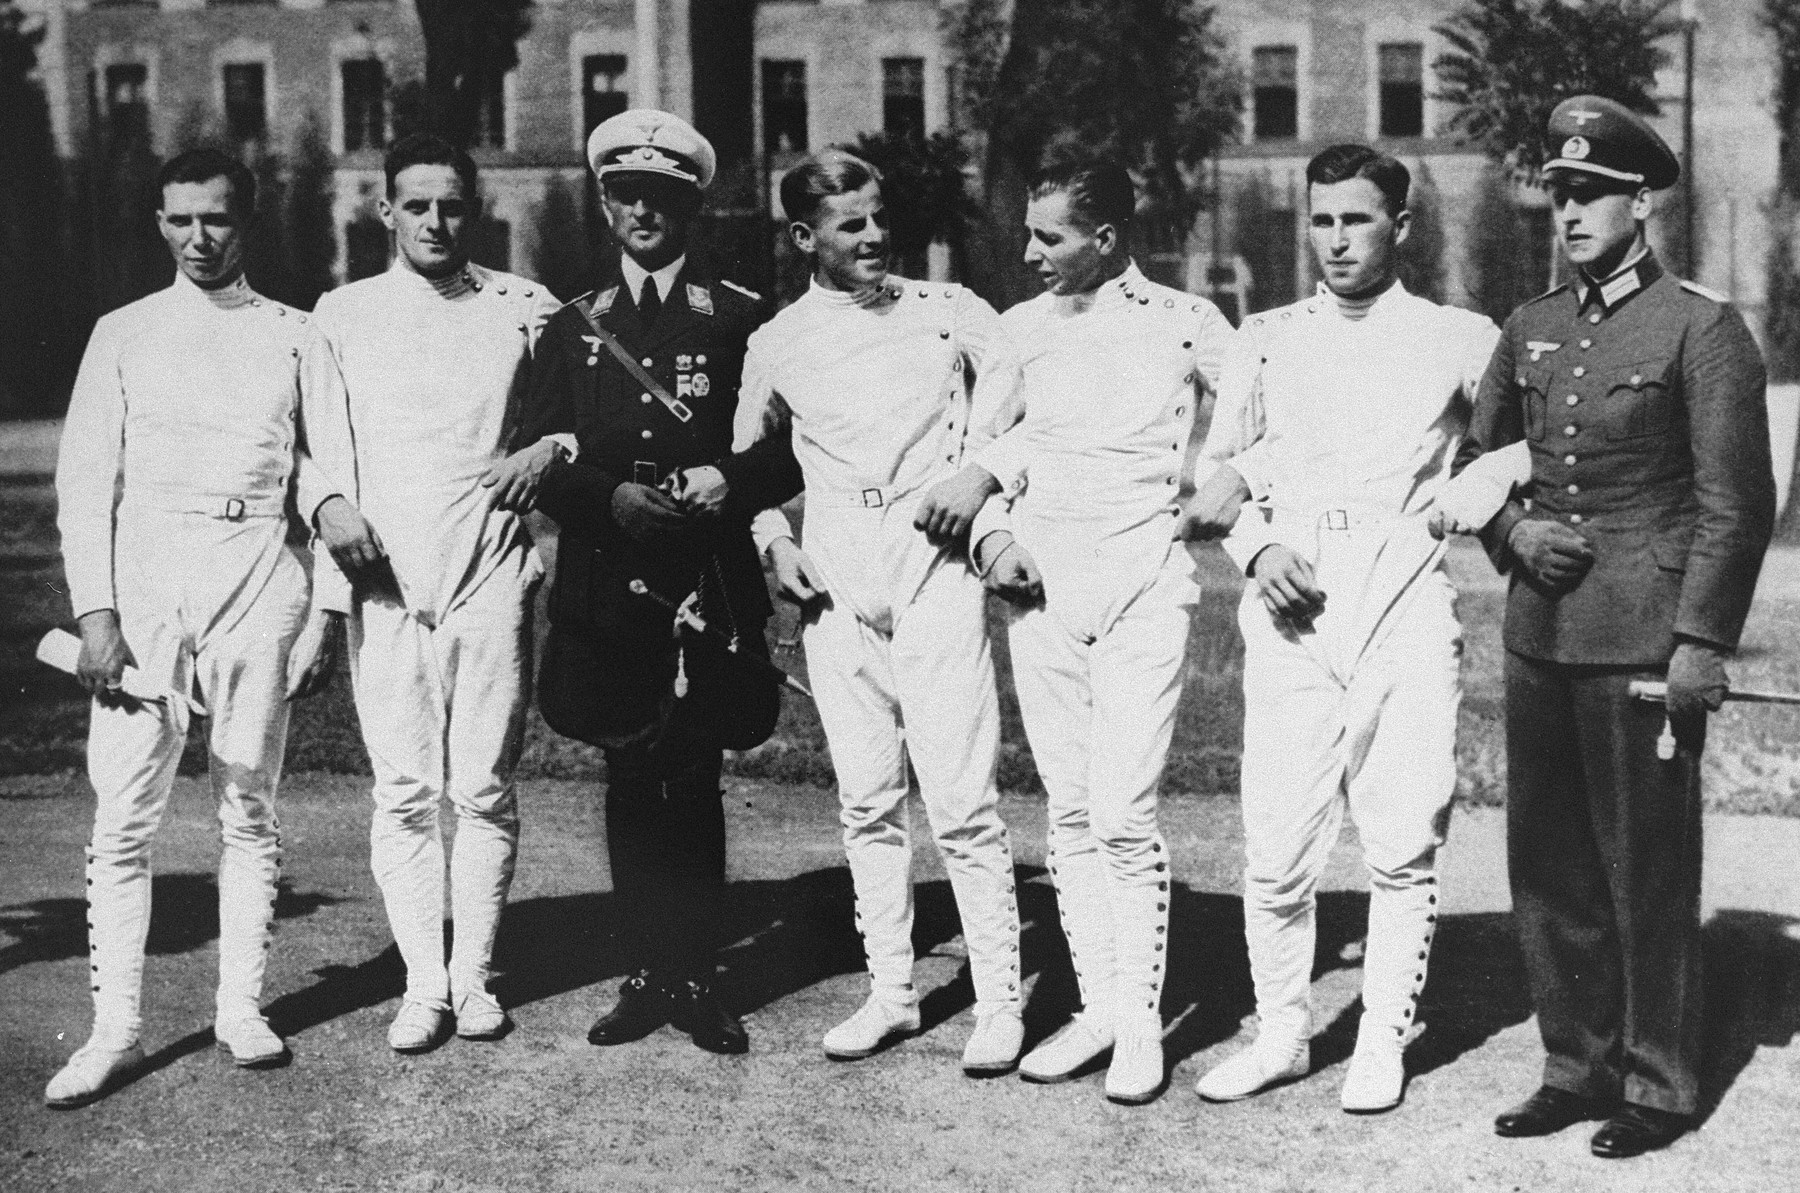 Group portrait of the members of the German Pentathalon team after their victory in Budapest.  This victory qualified the team to compete at the 1936 Berlin Olympics.  Pictured here, from left to right, are Oberlt. Birk, Oberlt. Handrick, Hauptmn. Heigl, Lt. Puttmann, Lt. Lemp, and Lt. Schreiber.